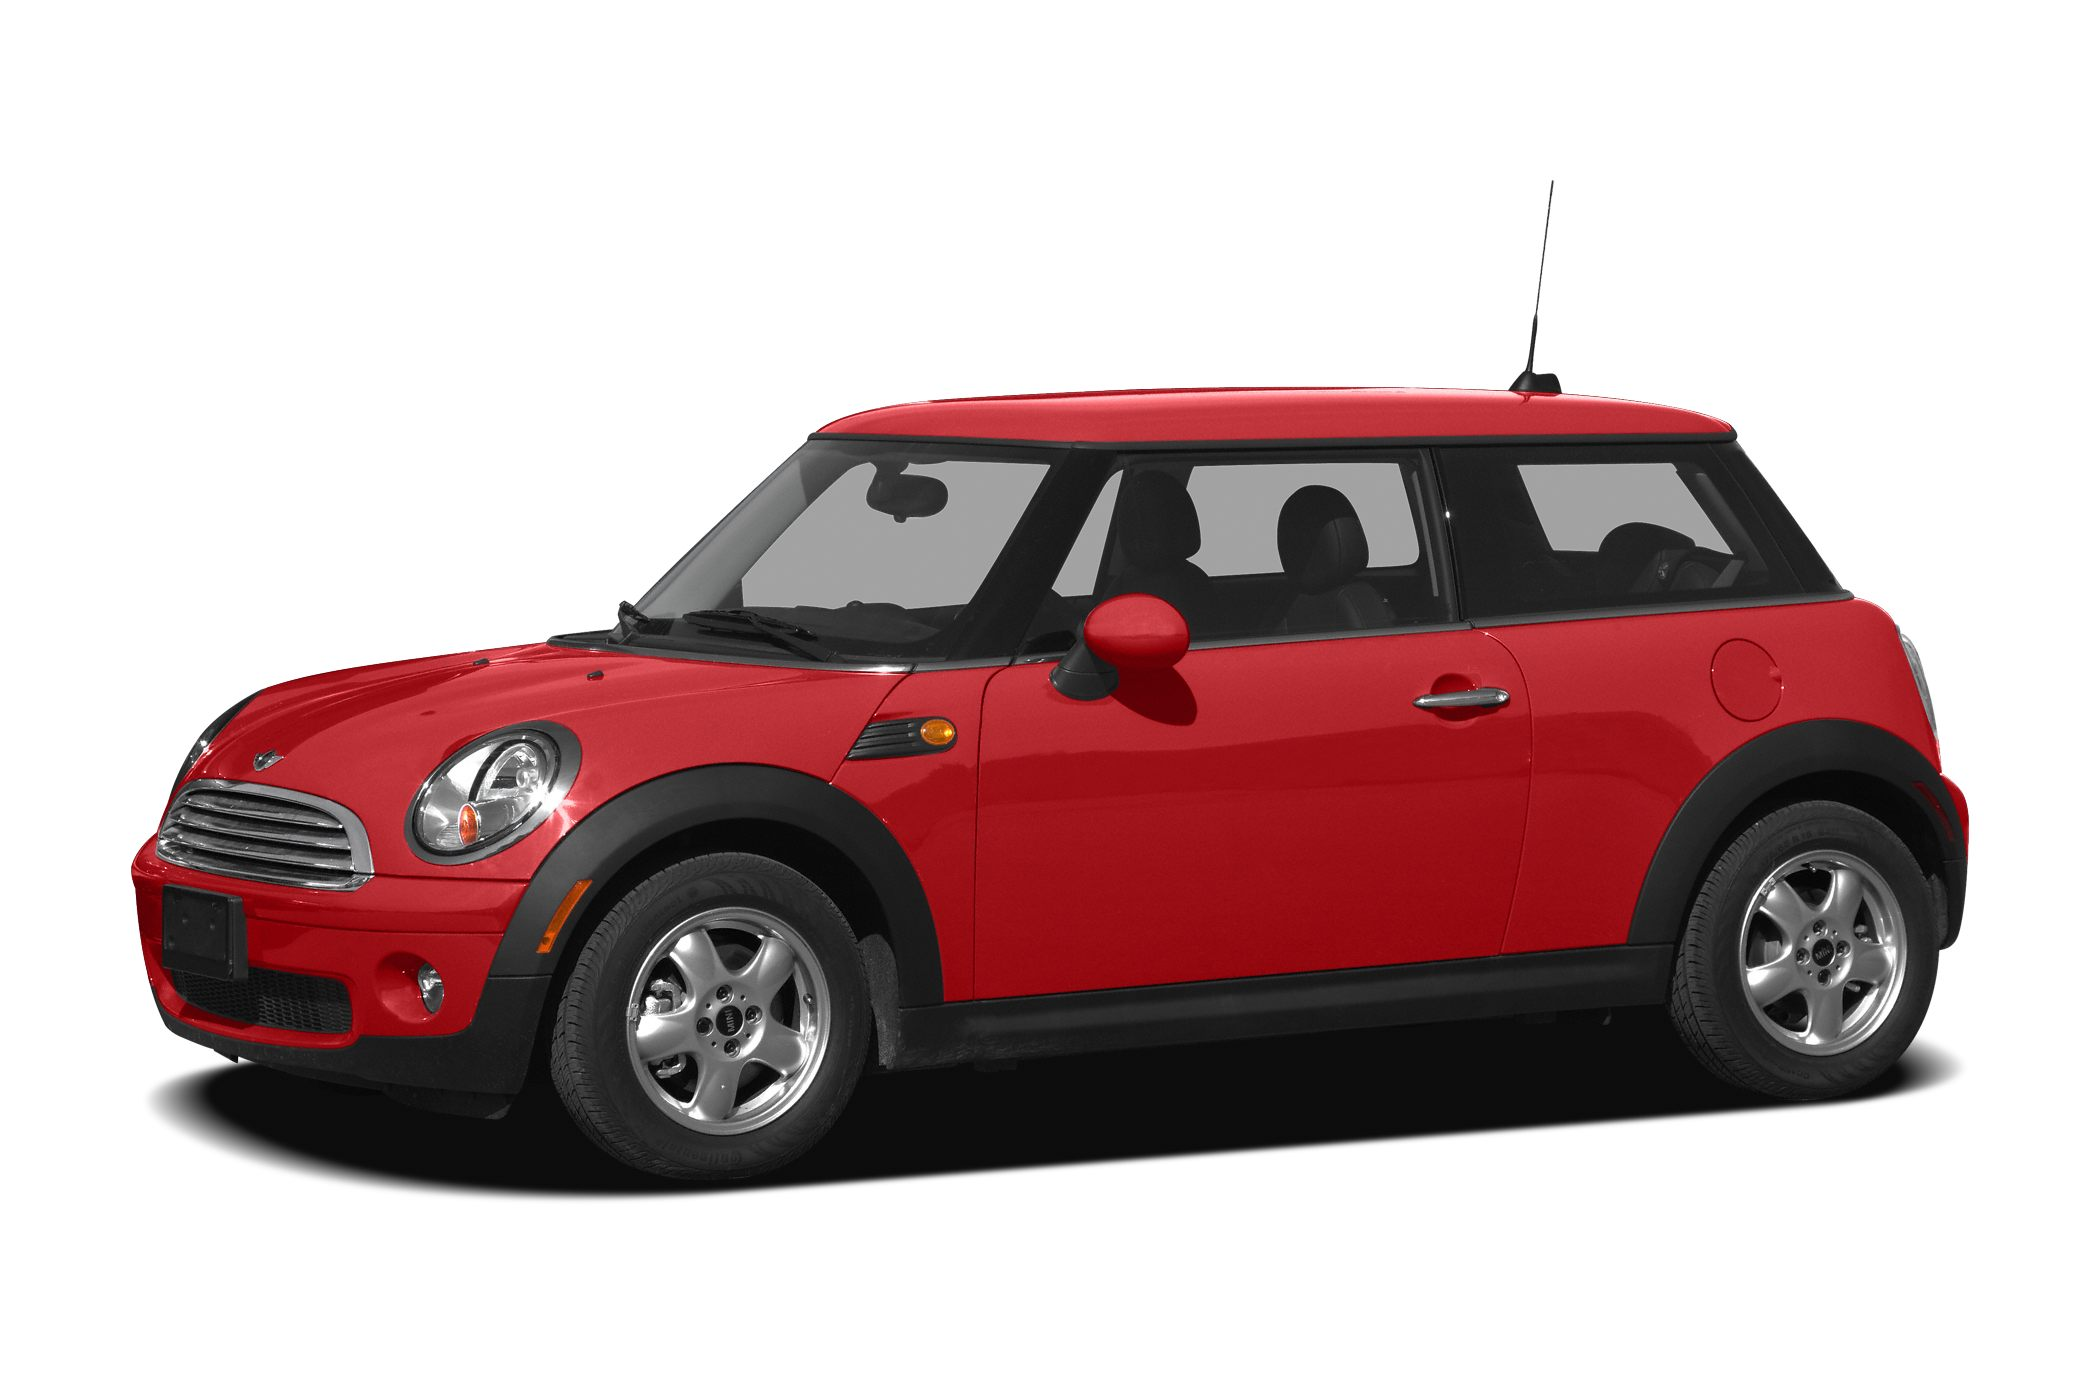 2010 MINI Cooper Base Vehicle Detailed Recent Oil Change and Passed Dealer Inspection Sticking